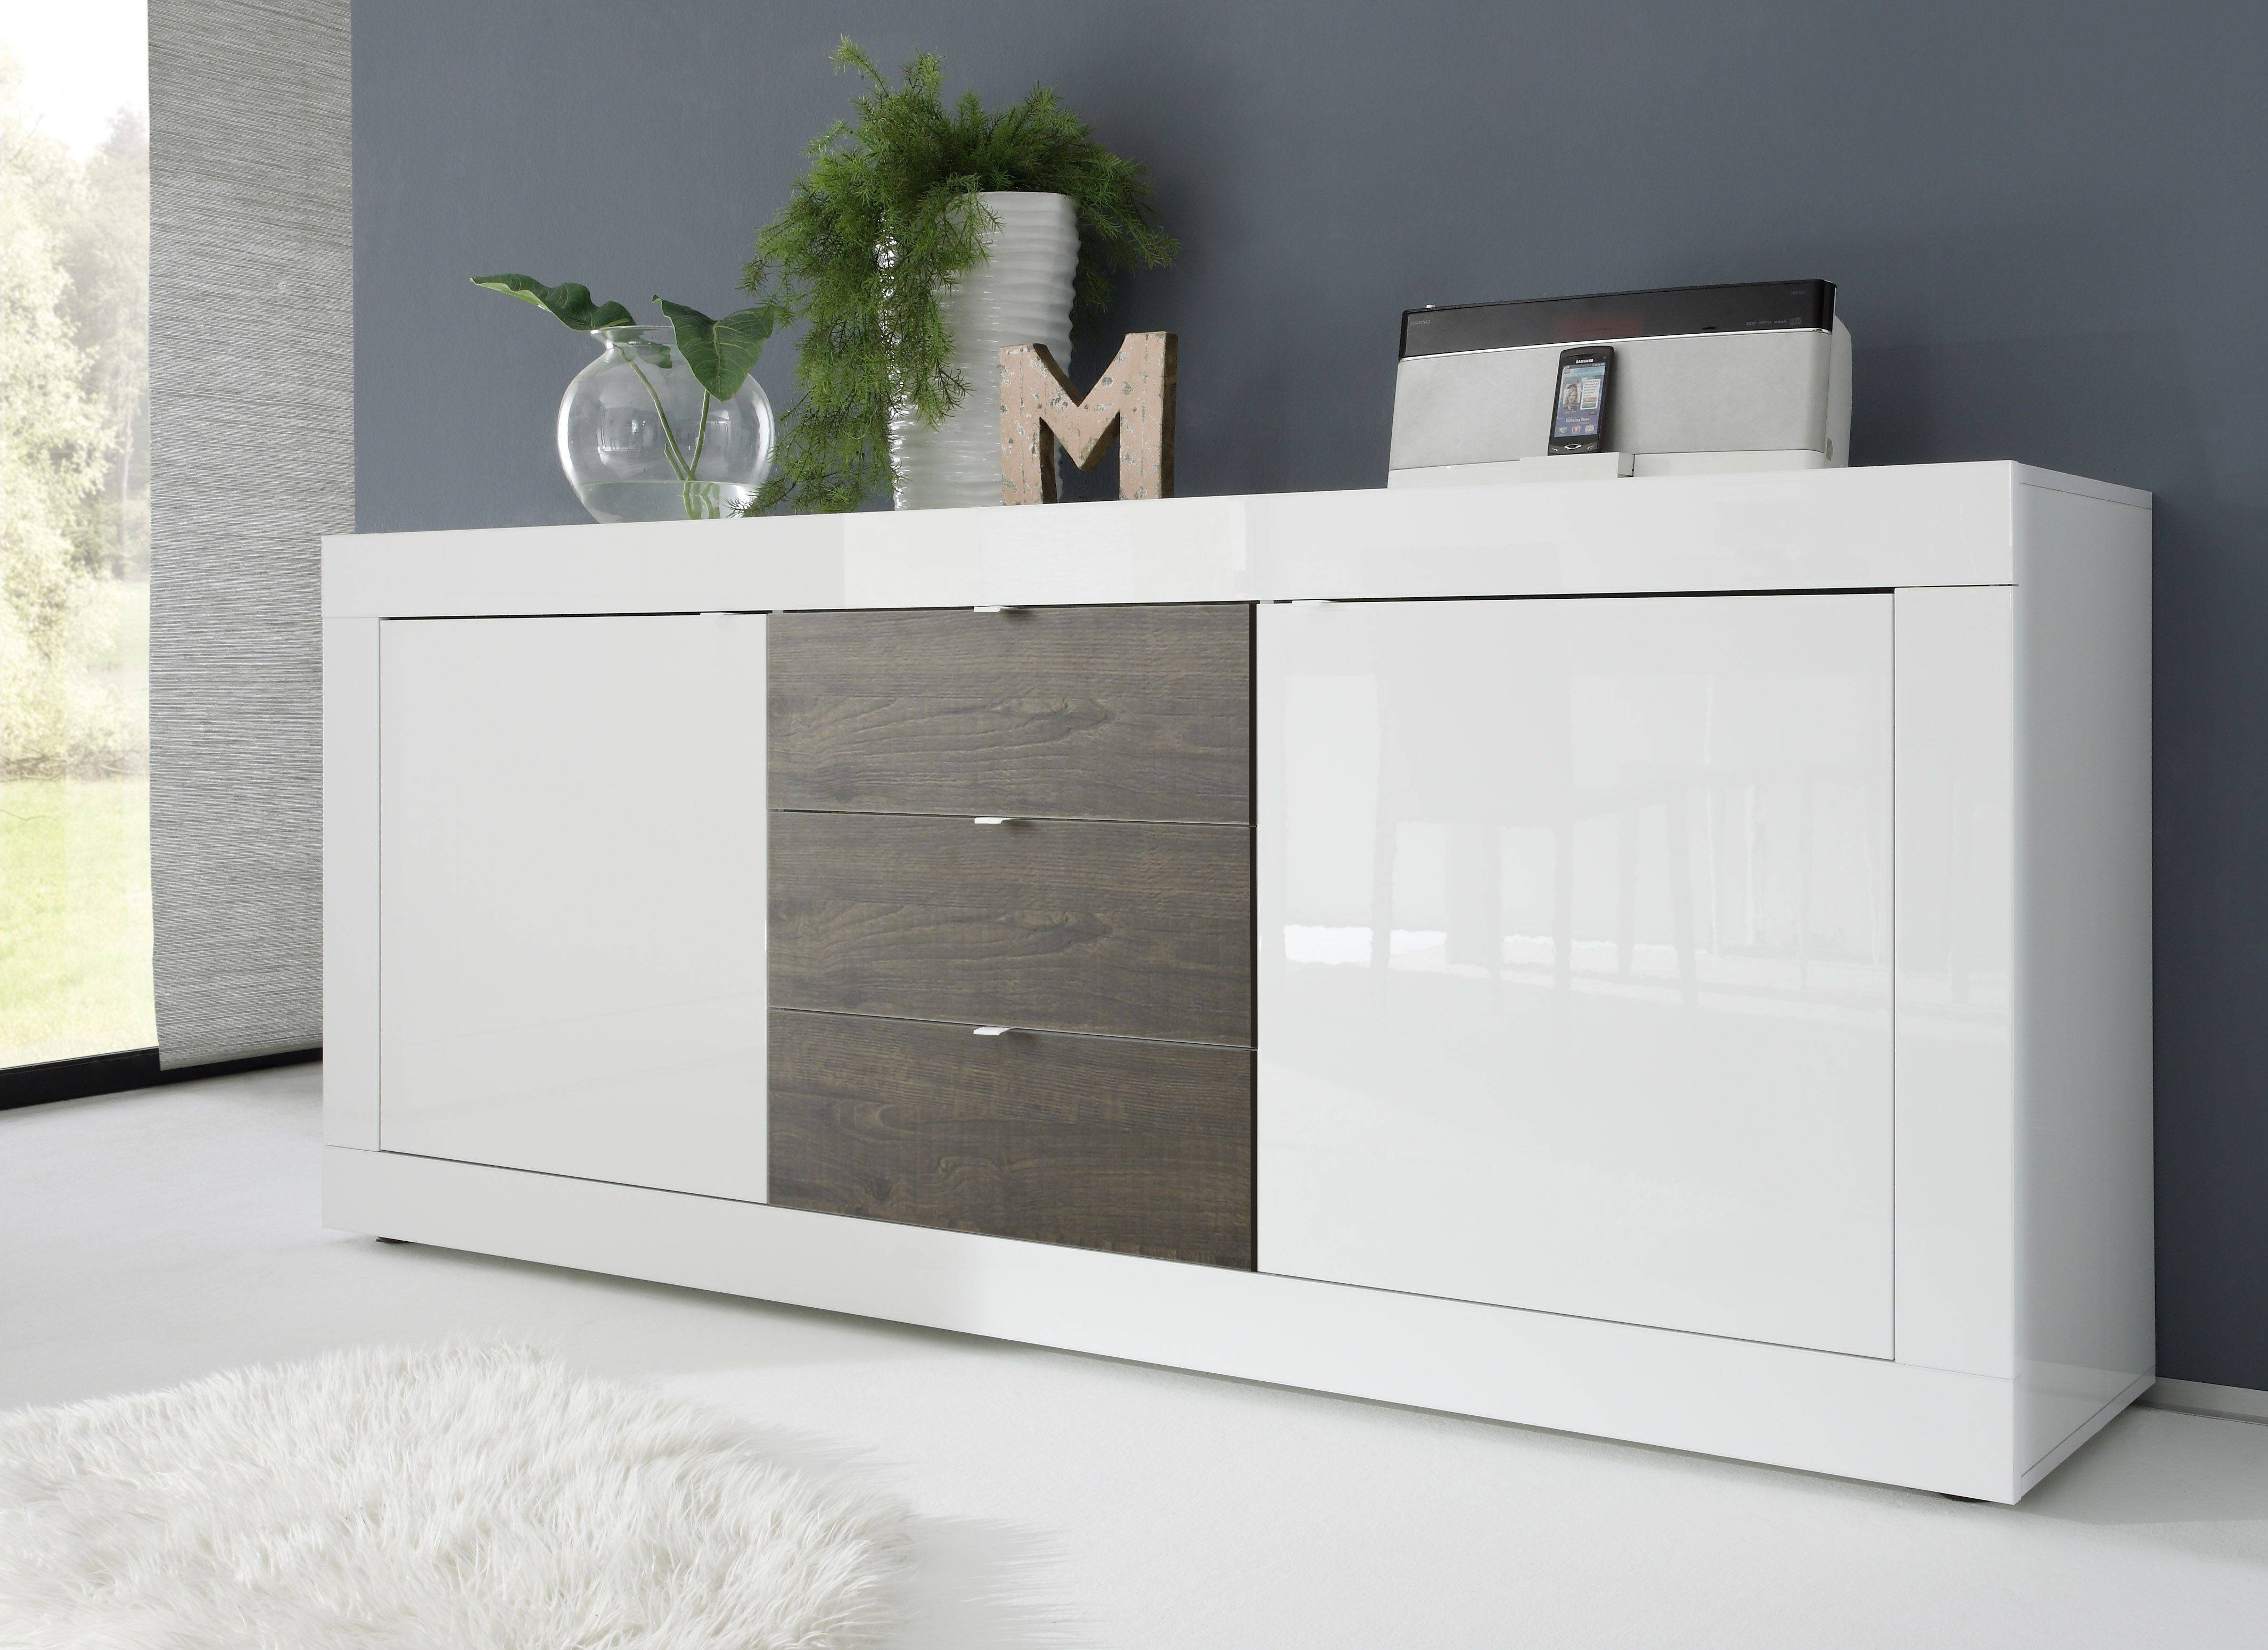 Dolcevita Ii White Gloss Sideboard – Sideboards – Sena Home Furniture Intended For Gloss Sideboard Furniture (View 8 of 15)